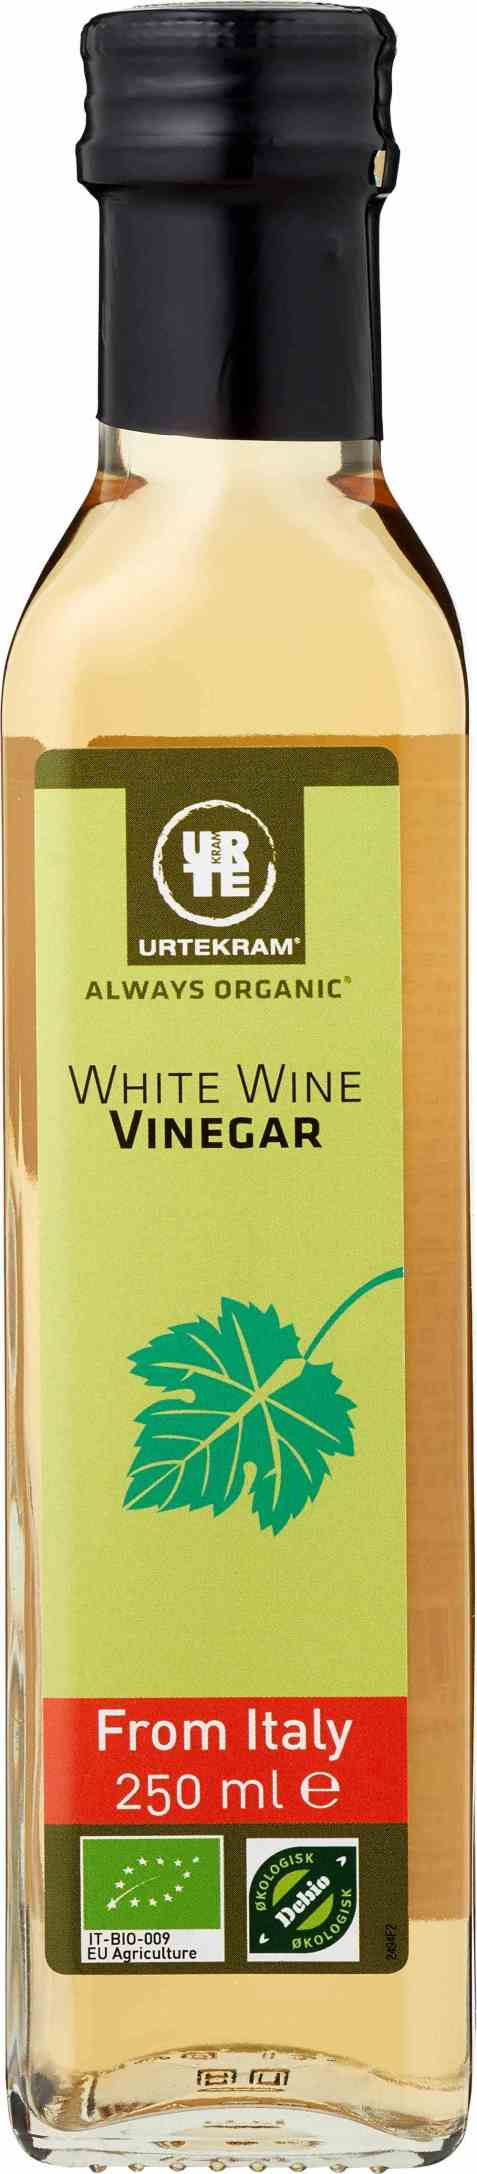 Bilde av Urtekram white wine vinegar 250 ml.